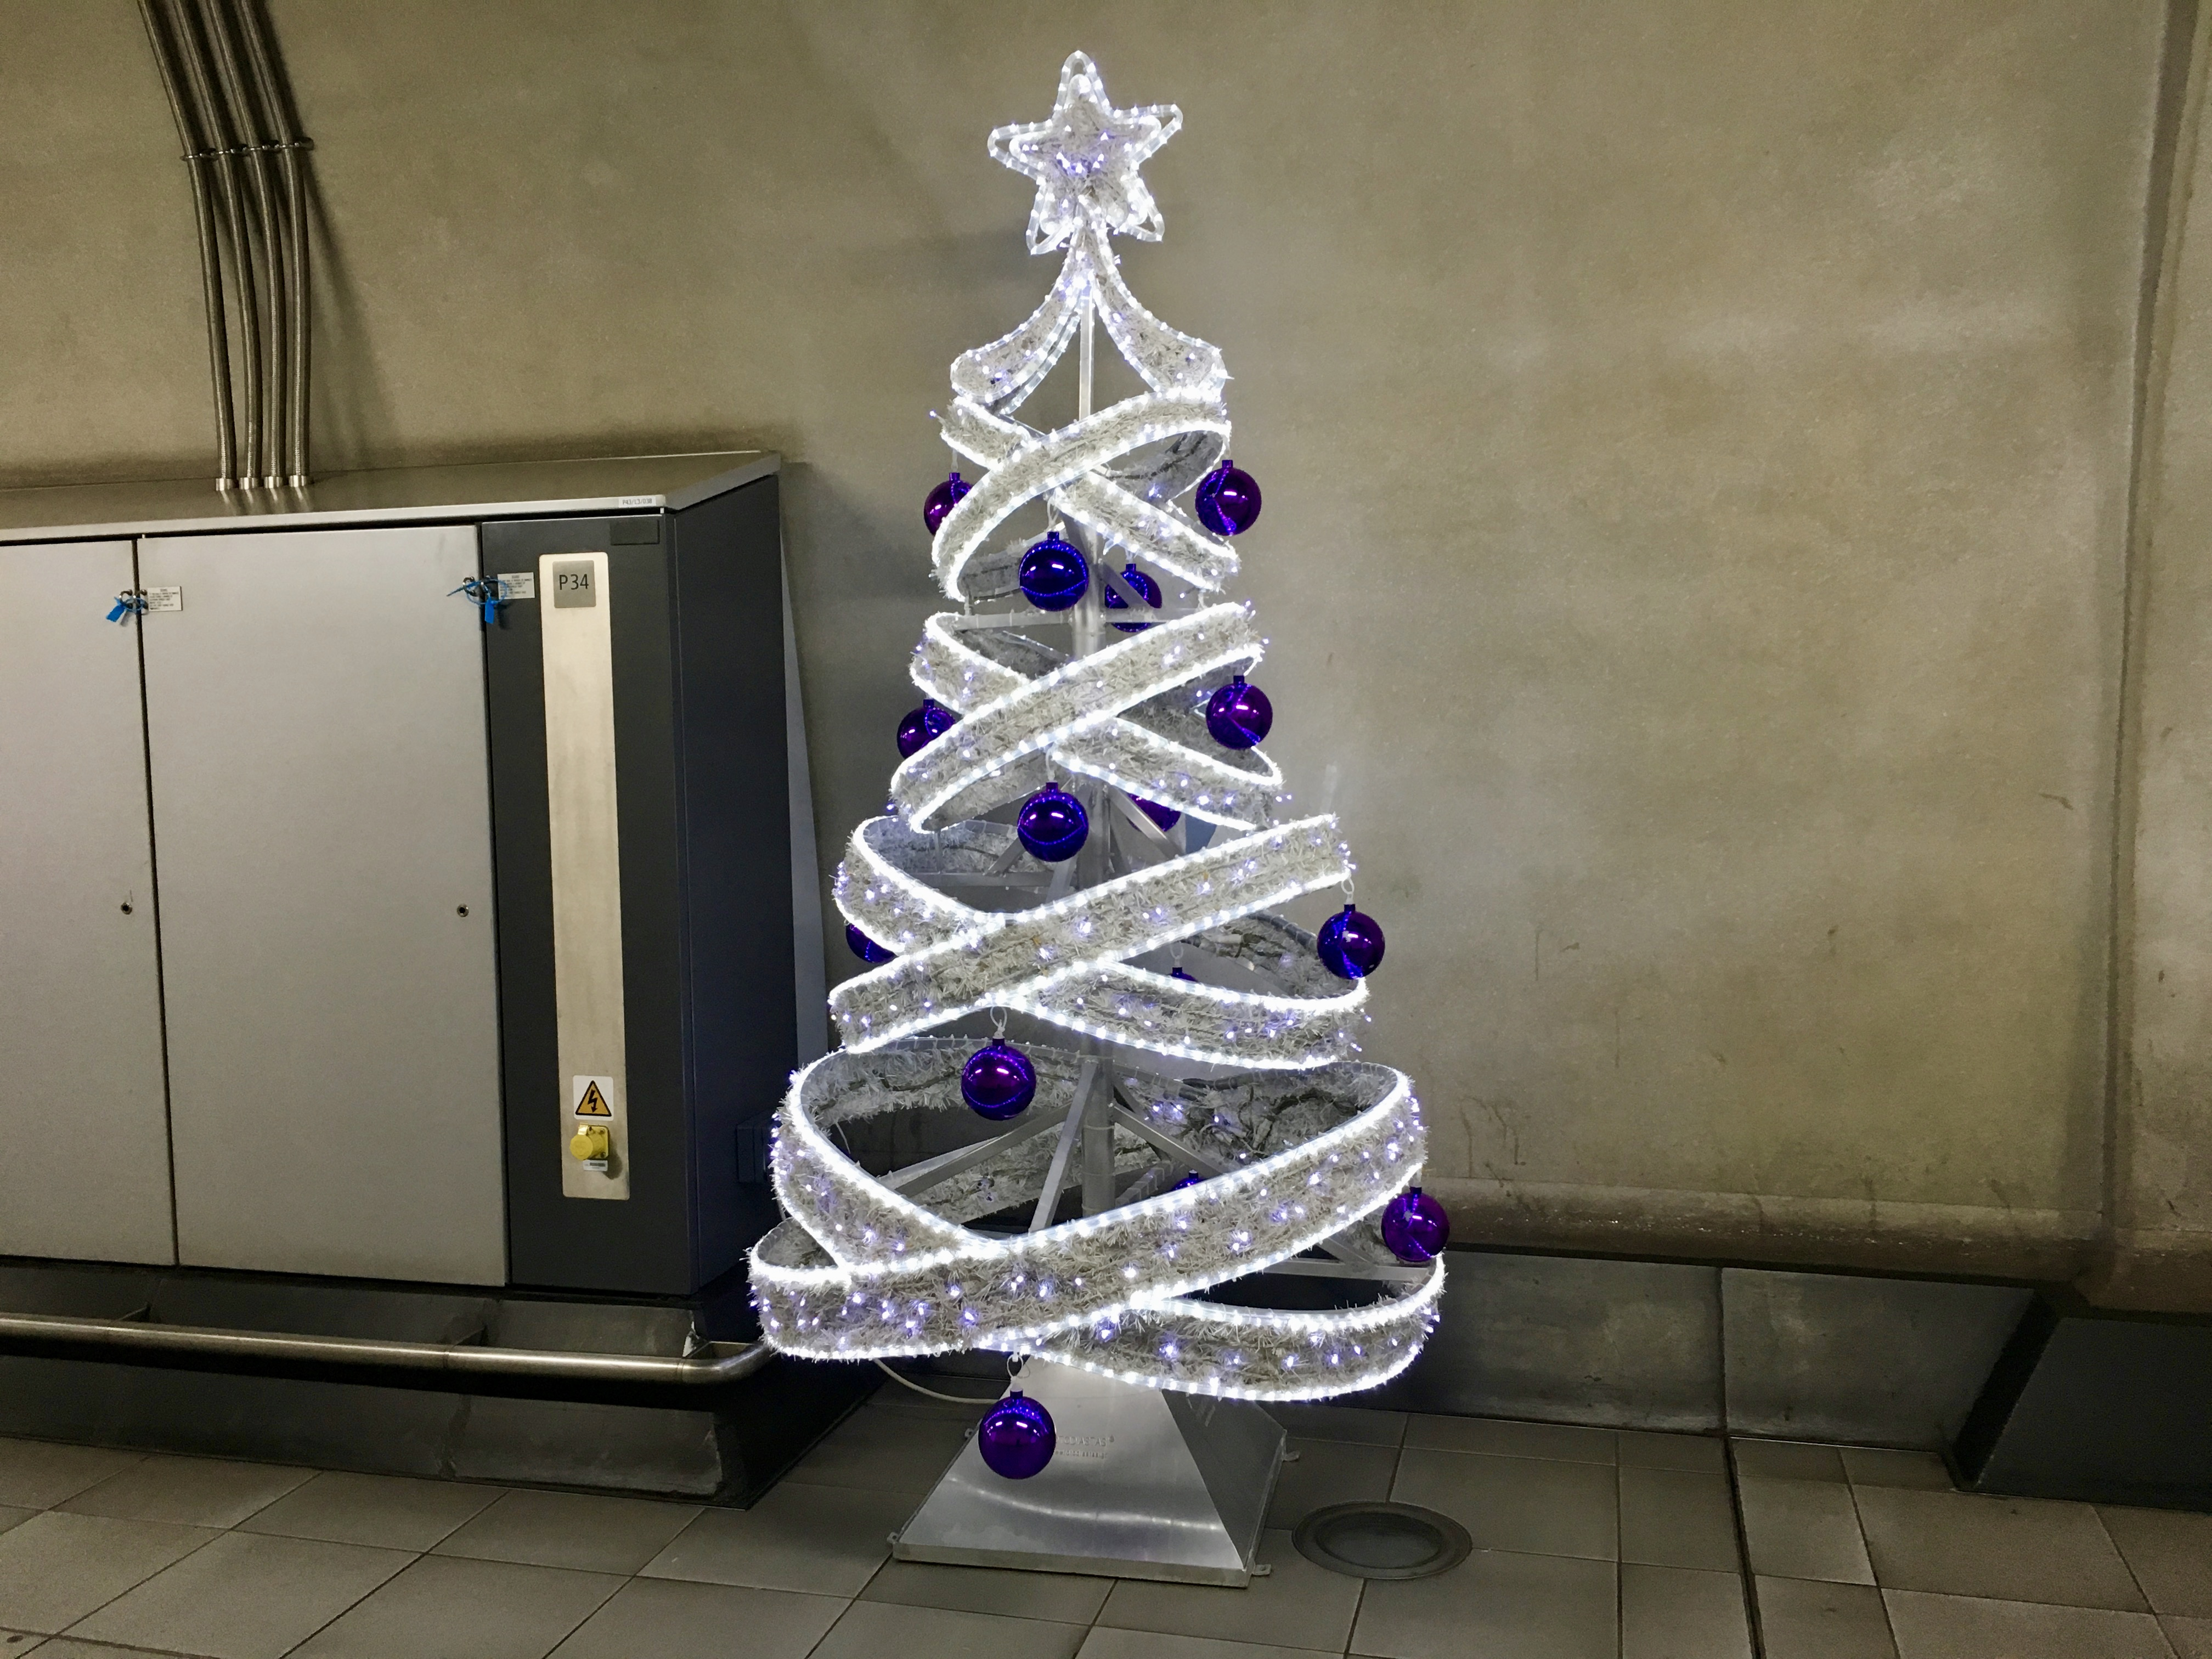 Deck the Hall at Heathrow